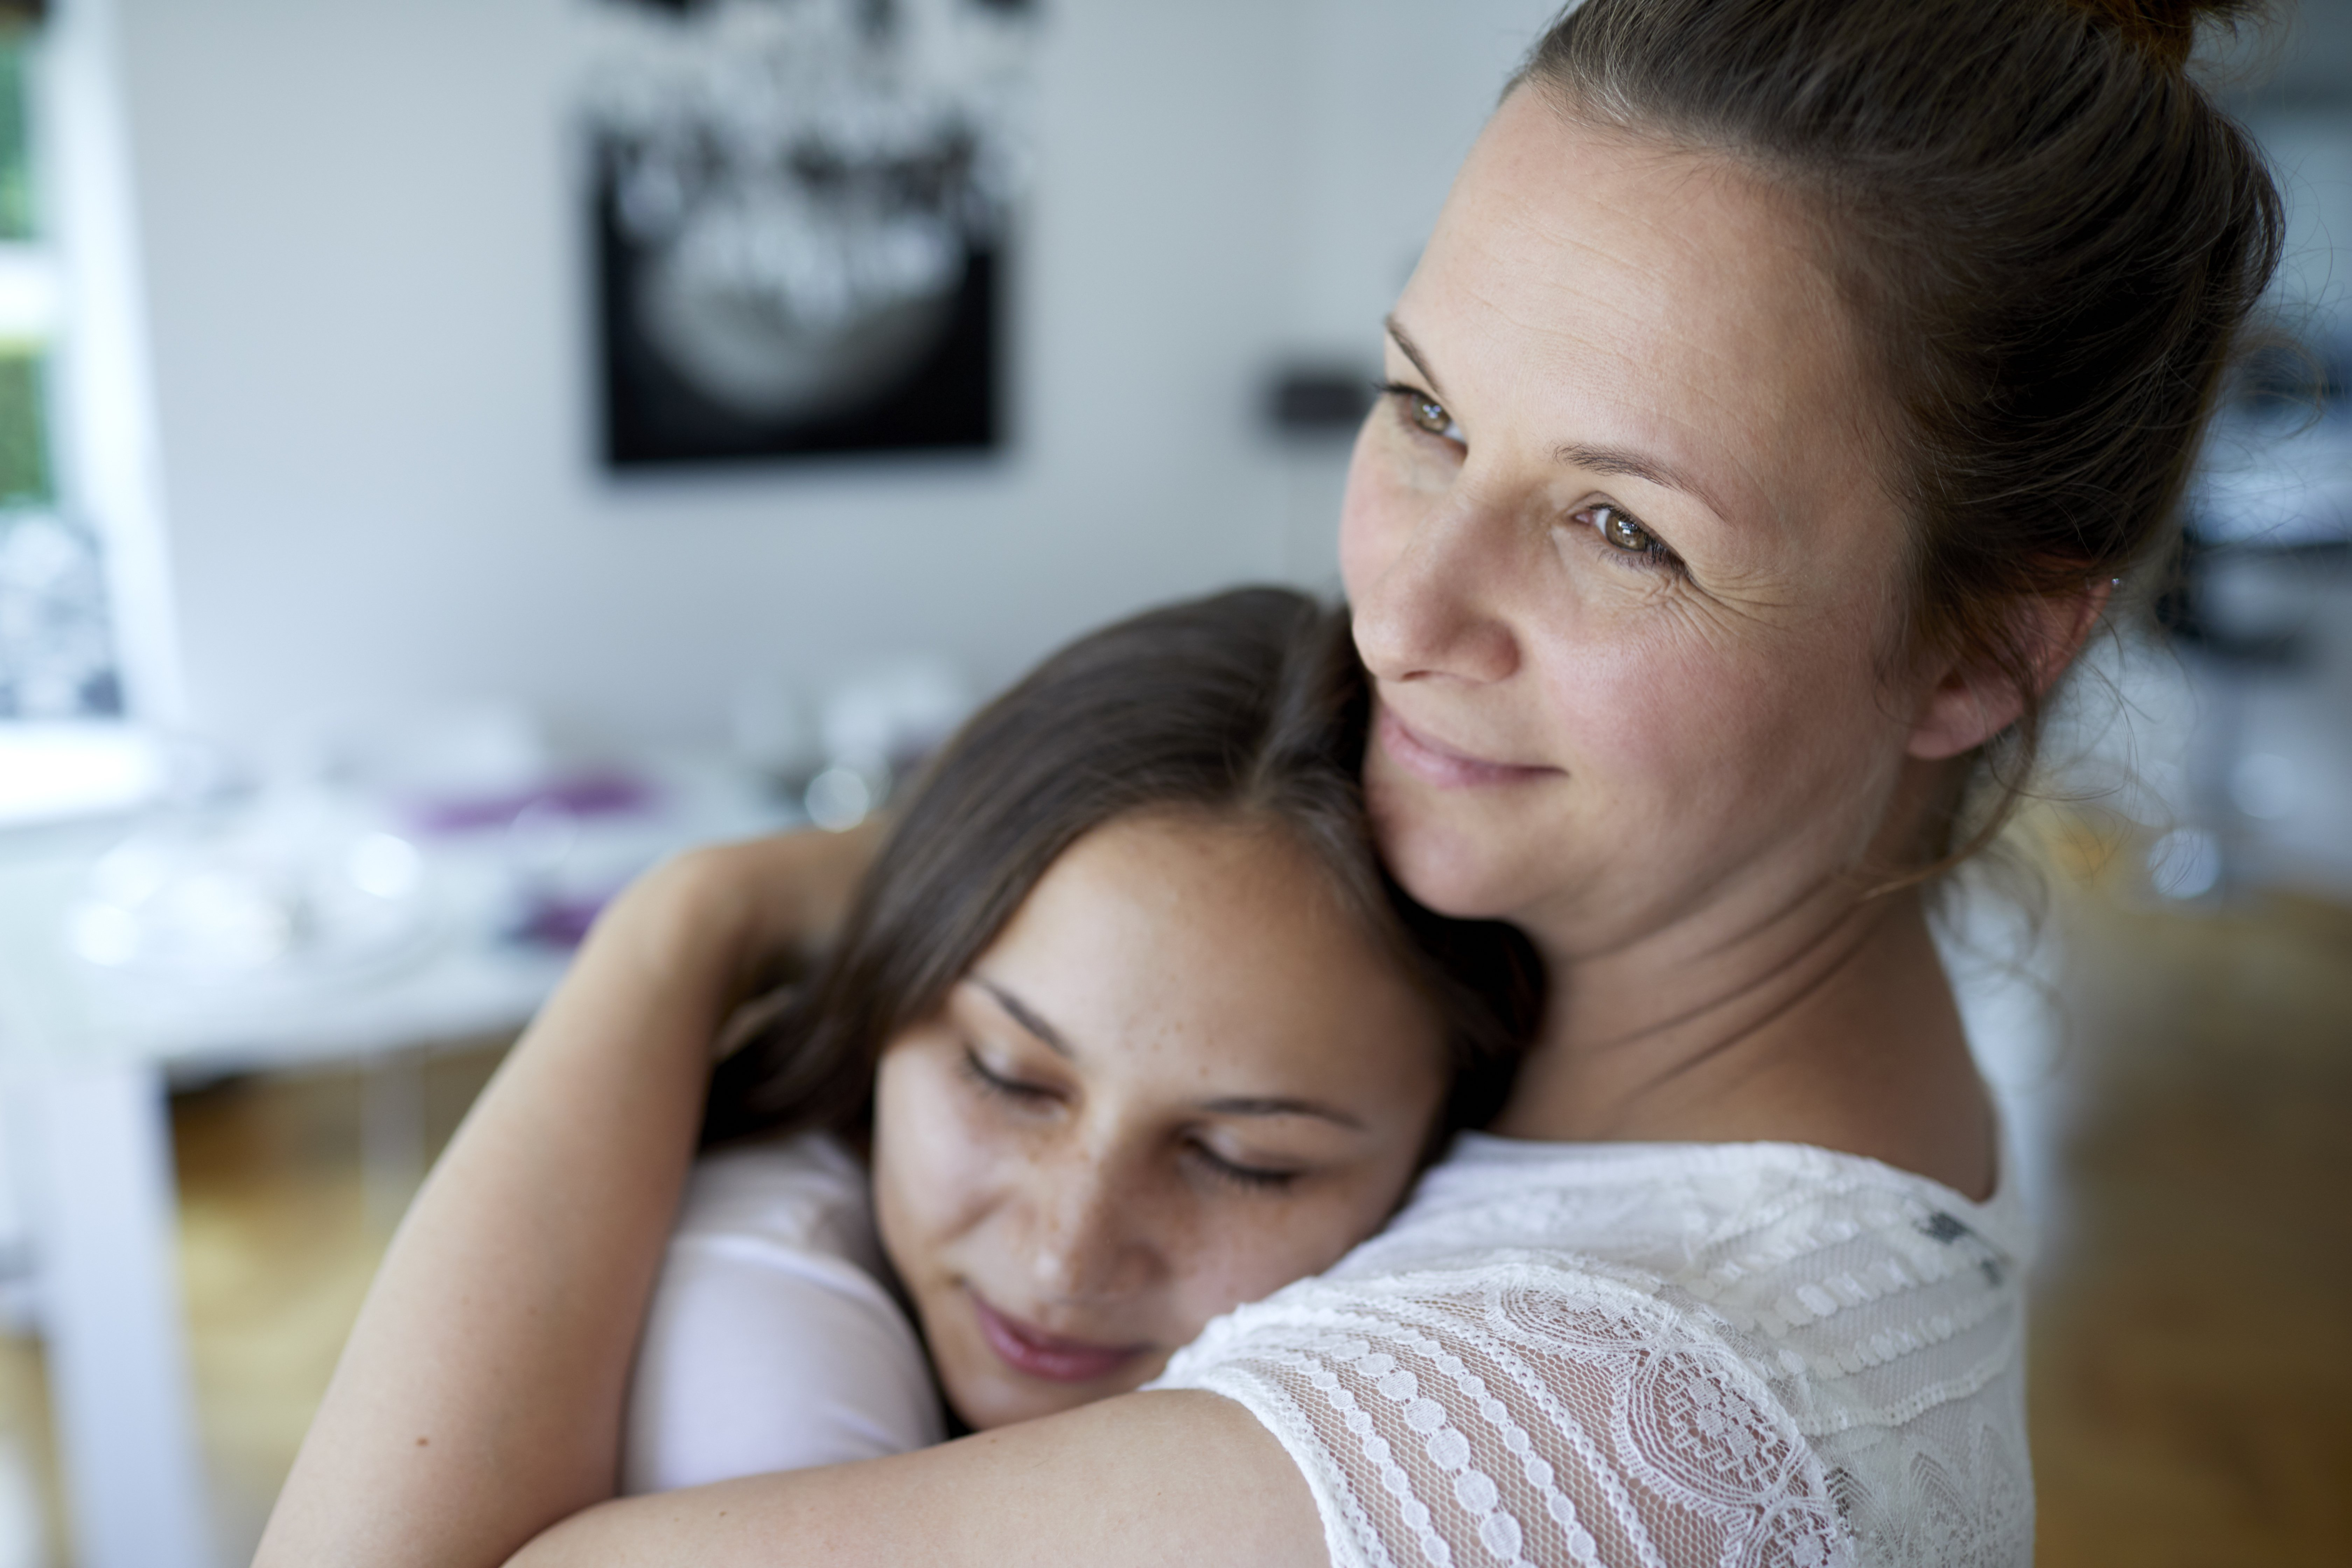 Mother and teenage daughter embracing at home|Photo: Getty Images